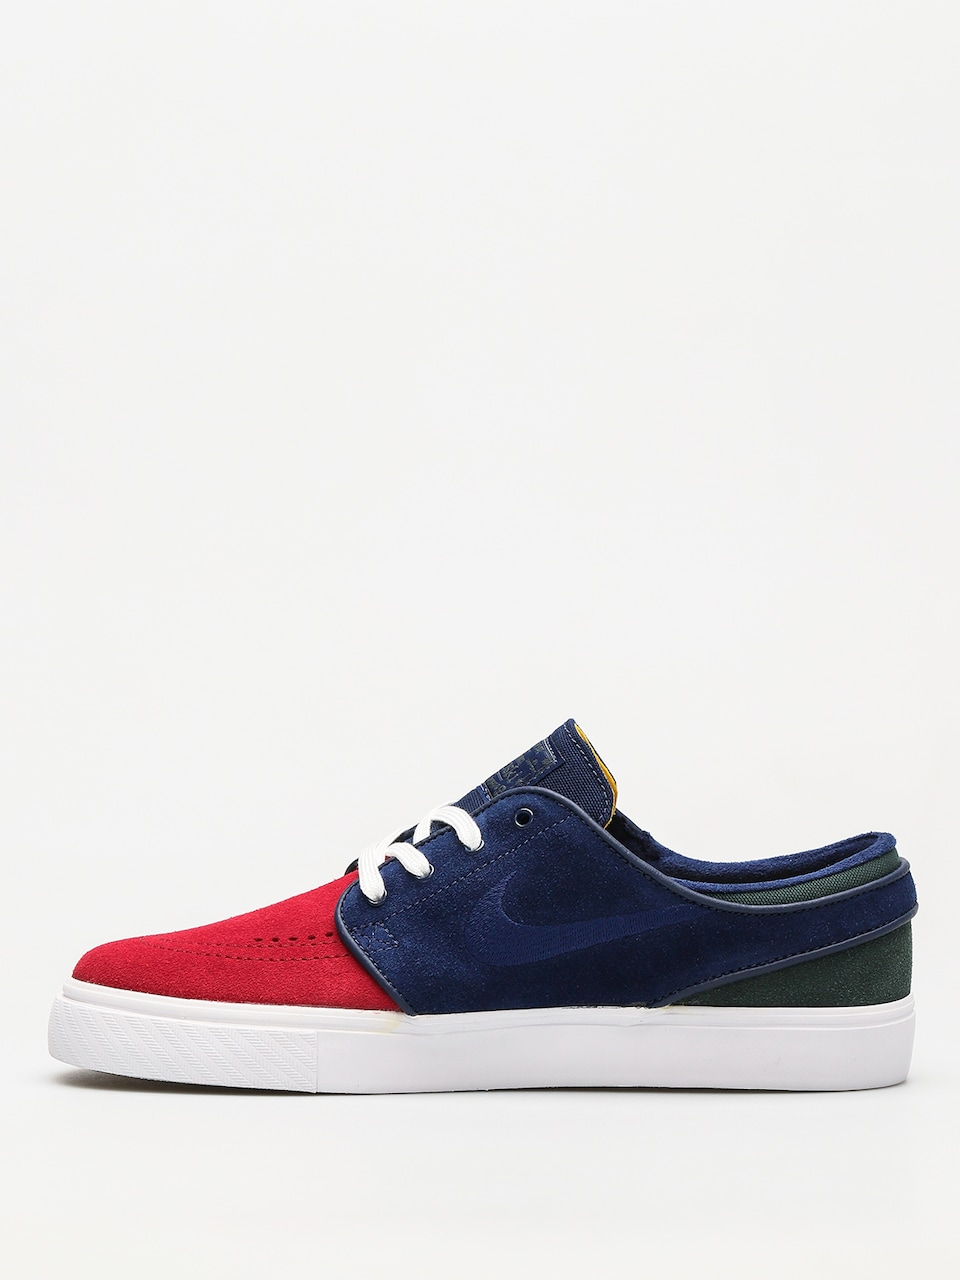 Isla Stewart Sótano novela  Nike SB Shoes Zoom Stefan Janoski (red crush/blue void white midnight green)